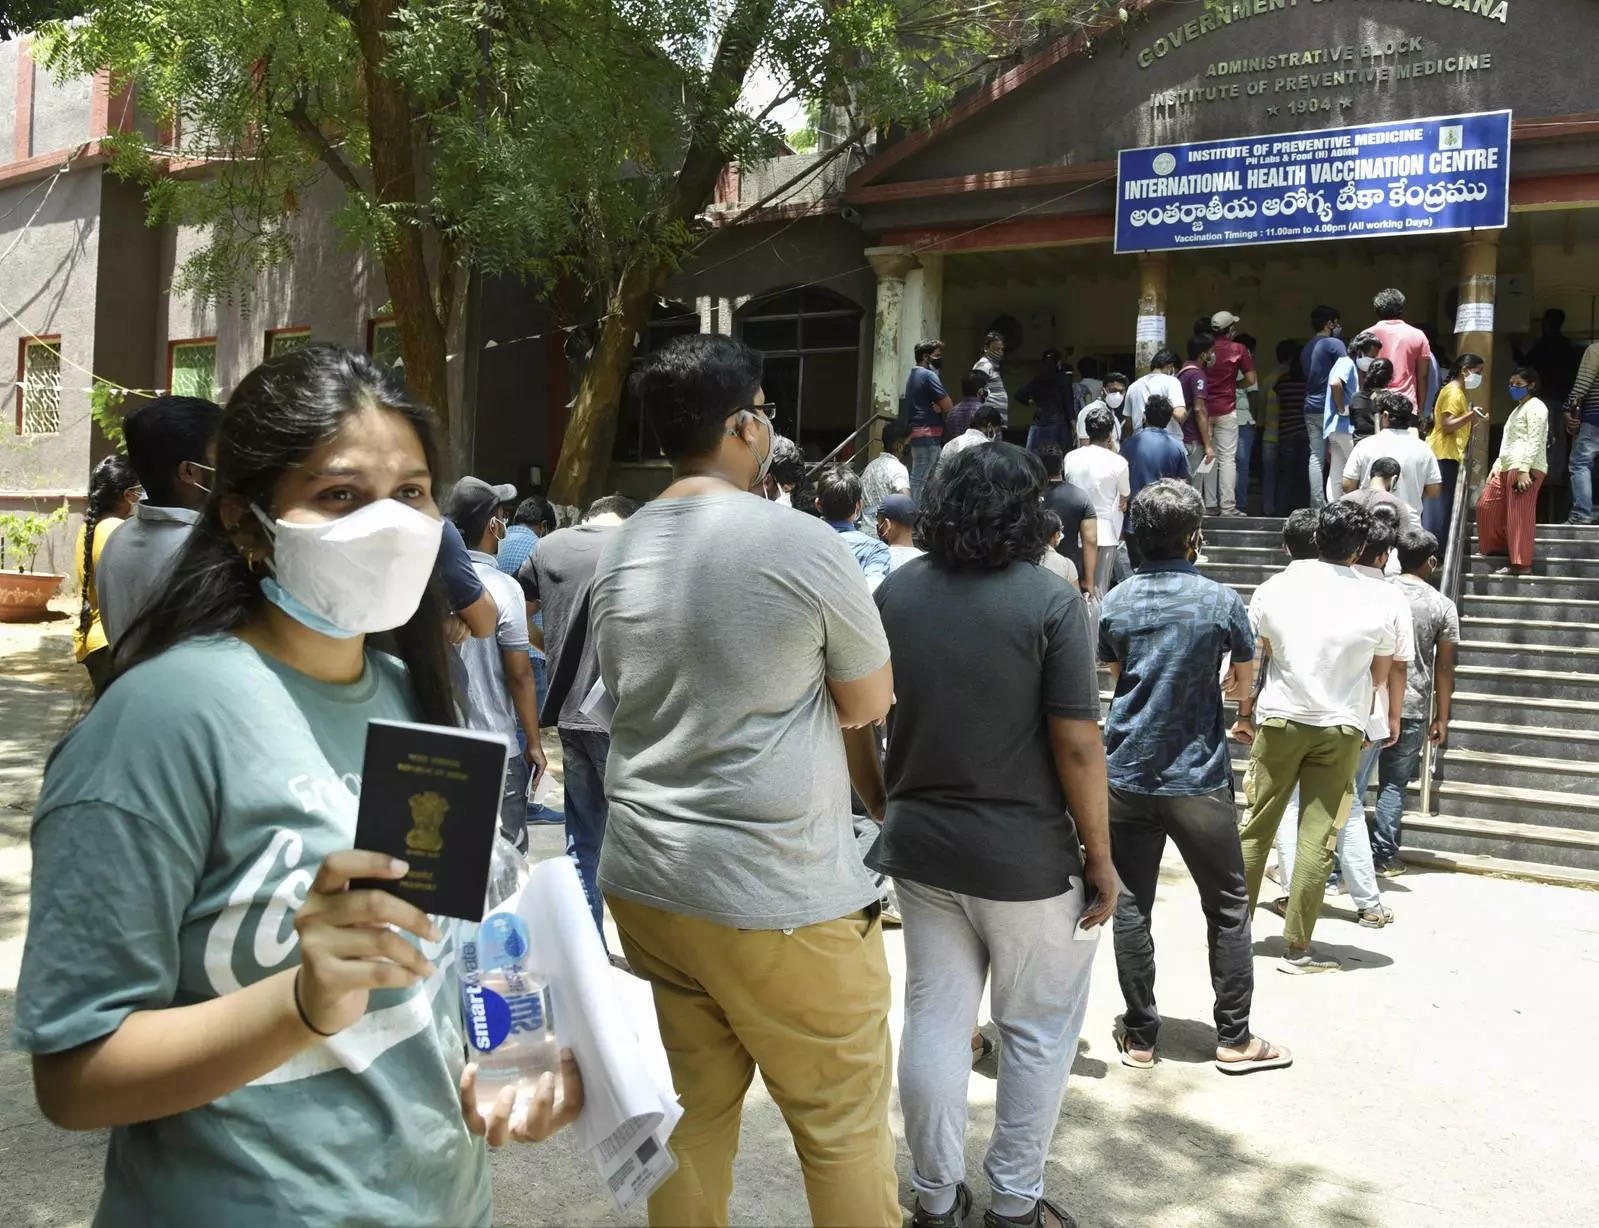 Indian students enrolled in foreign universities seek early redressal on travel ban